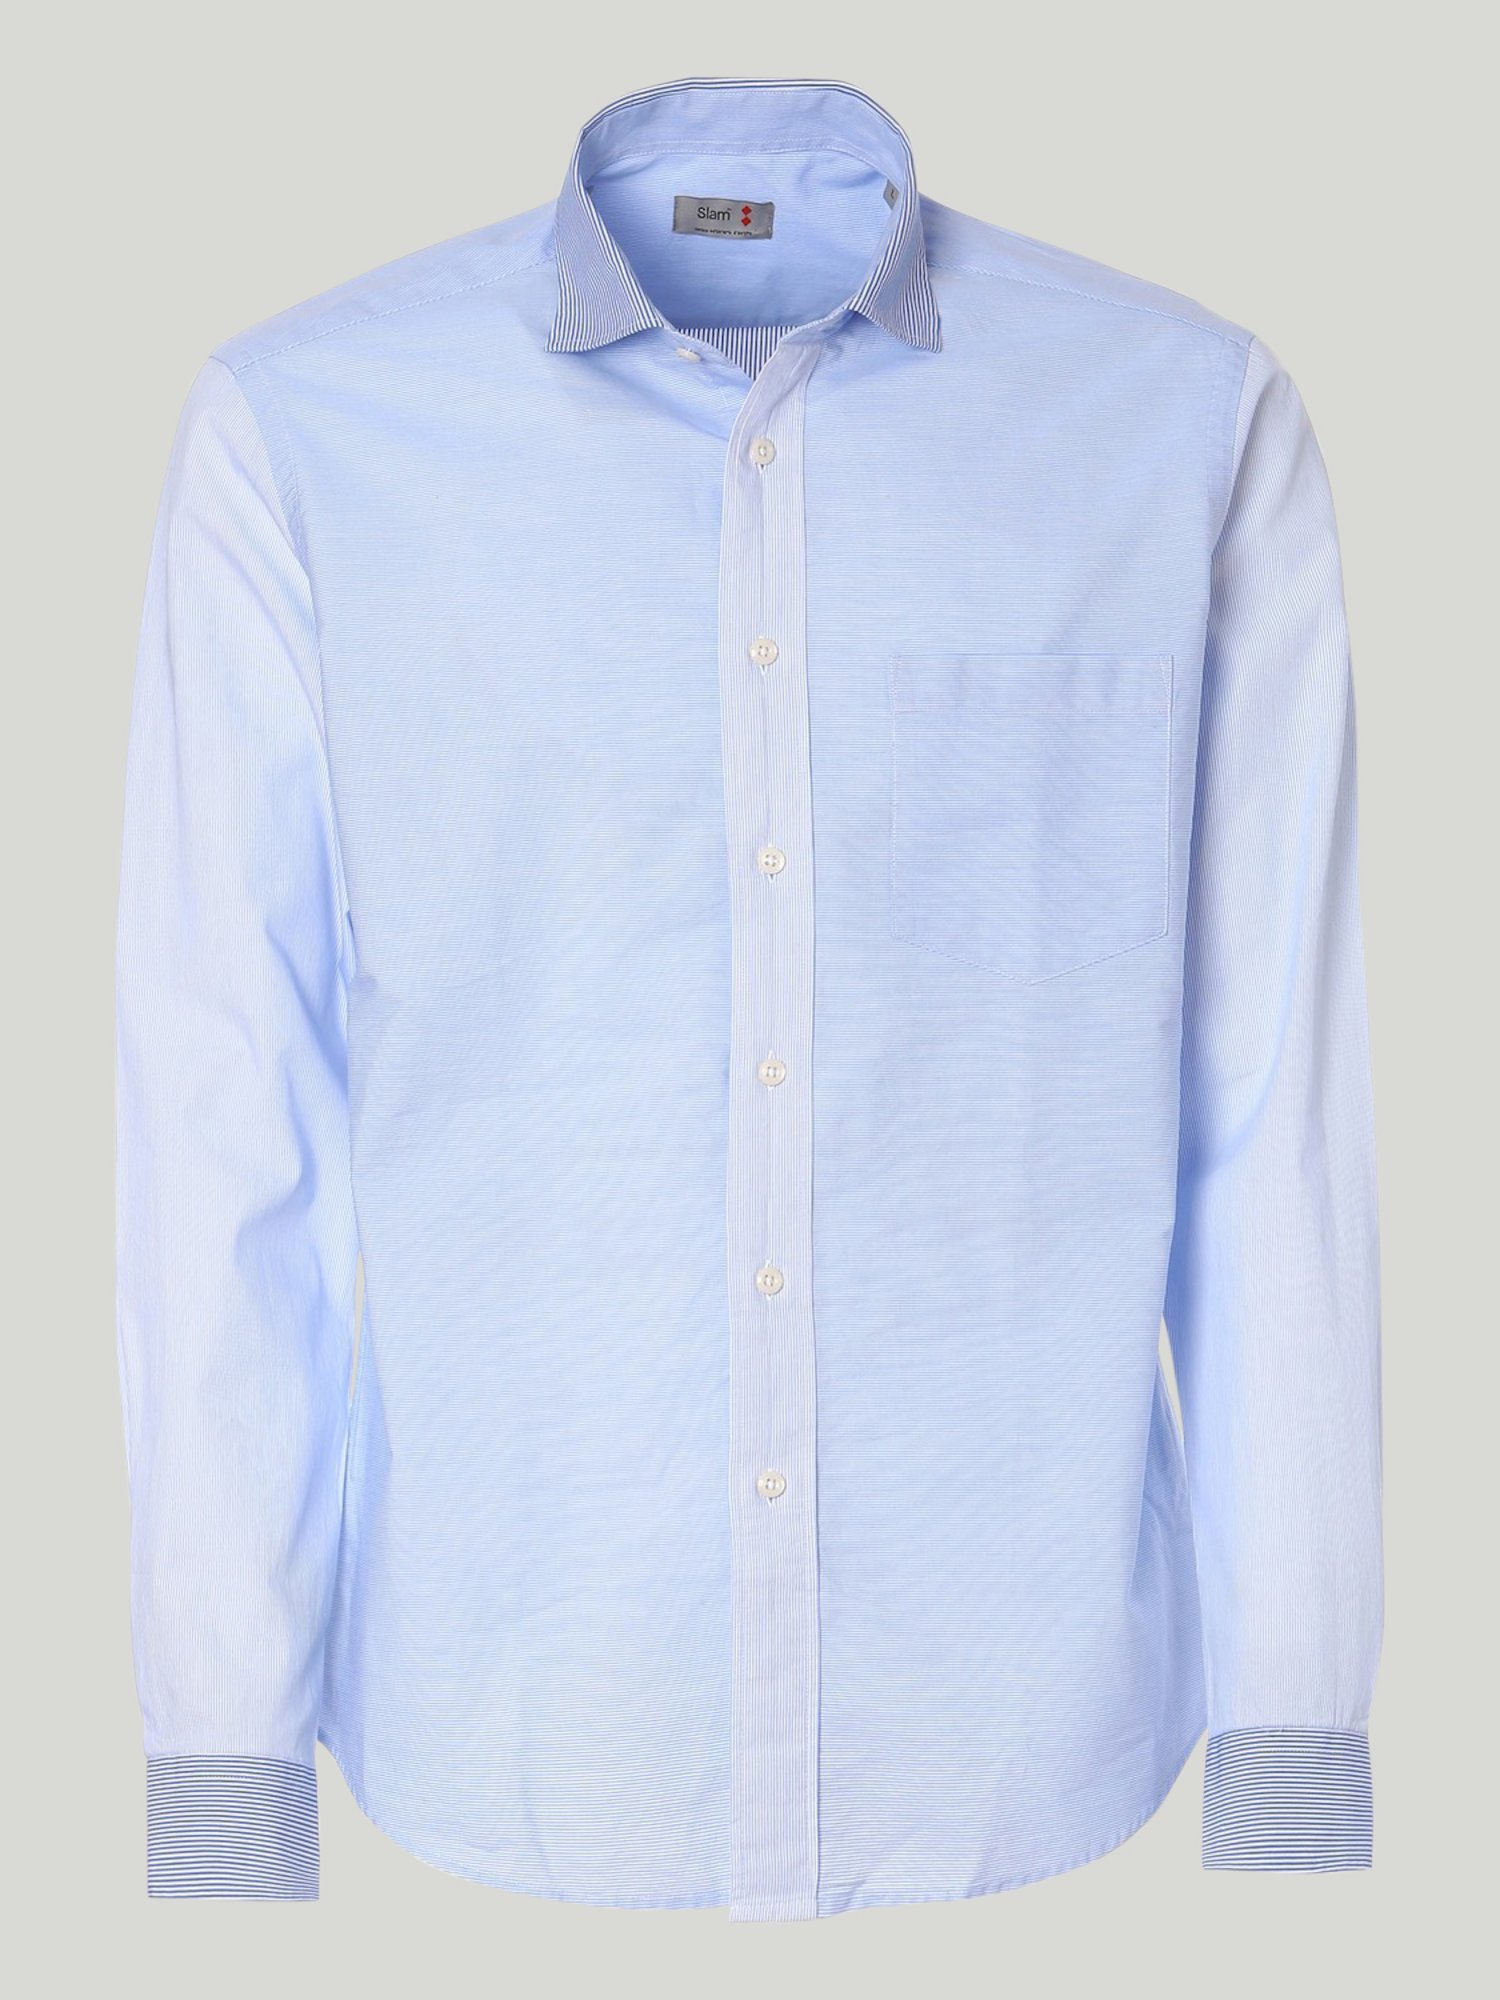 Hemd Eso - Striped White / Light Blue